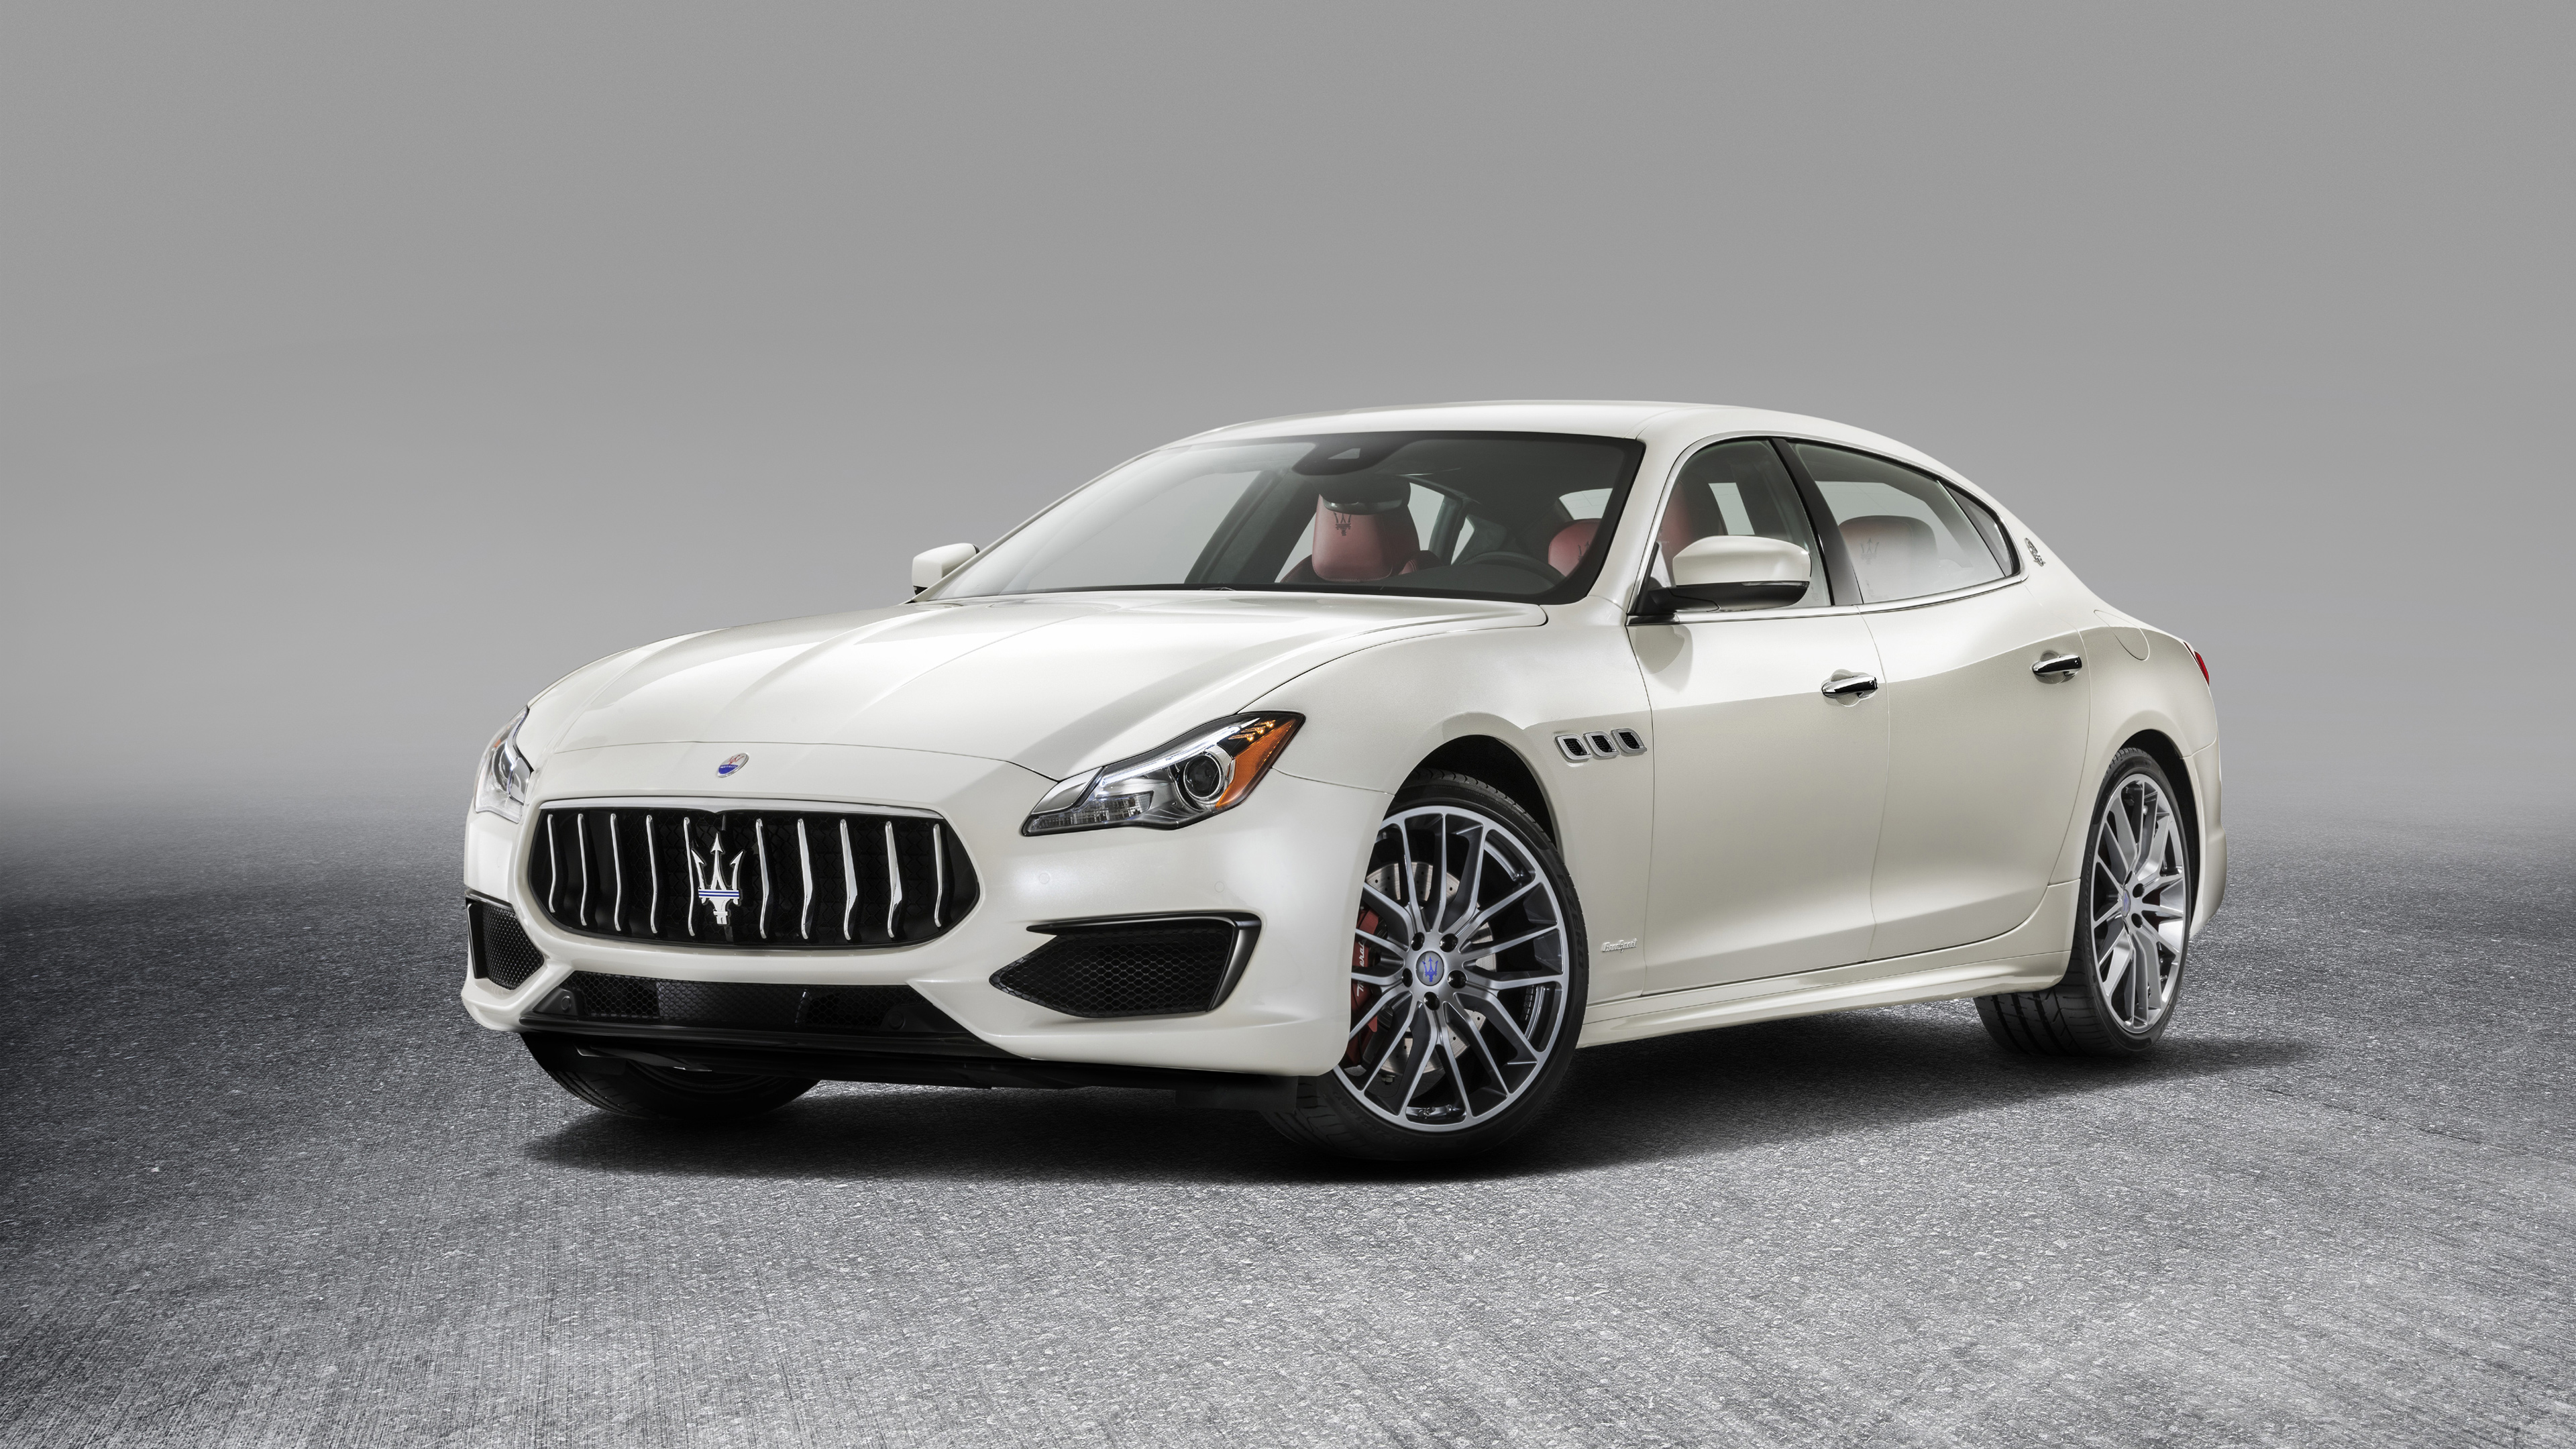 Maserati Quattroporte Wallpapers and Background Images   stmednet 3840x2160